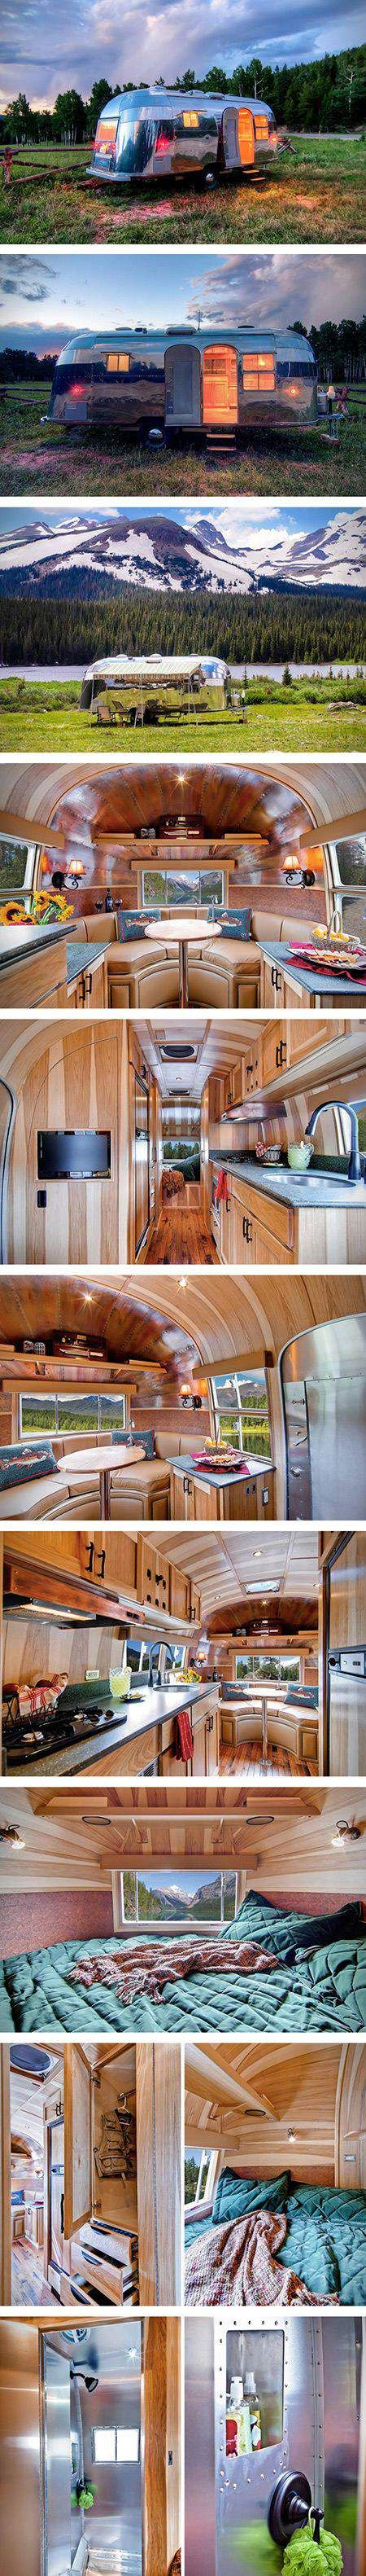 15 Awesome Airstream Interiors #gypsysetup